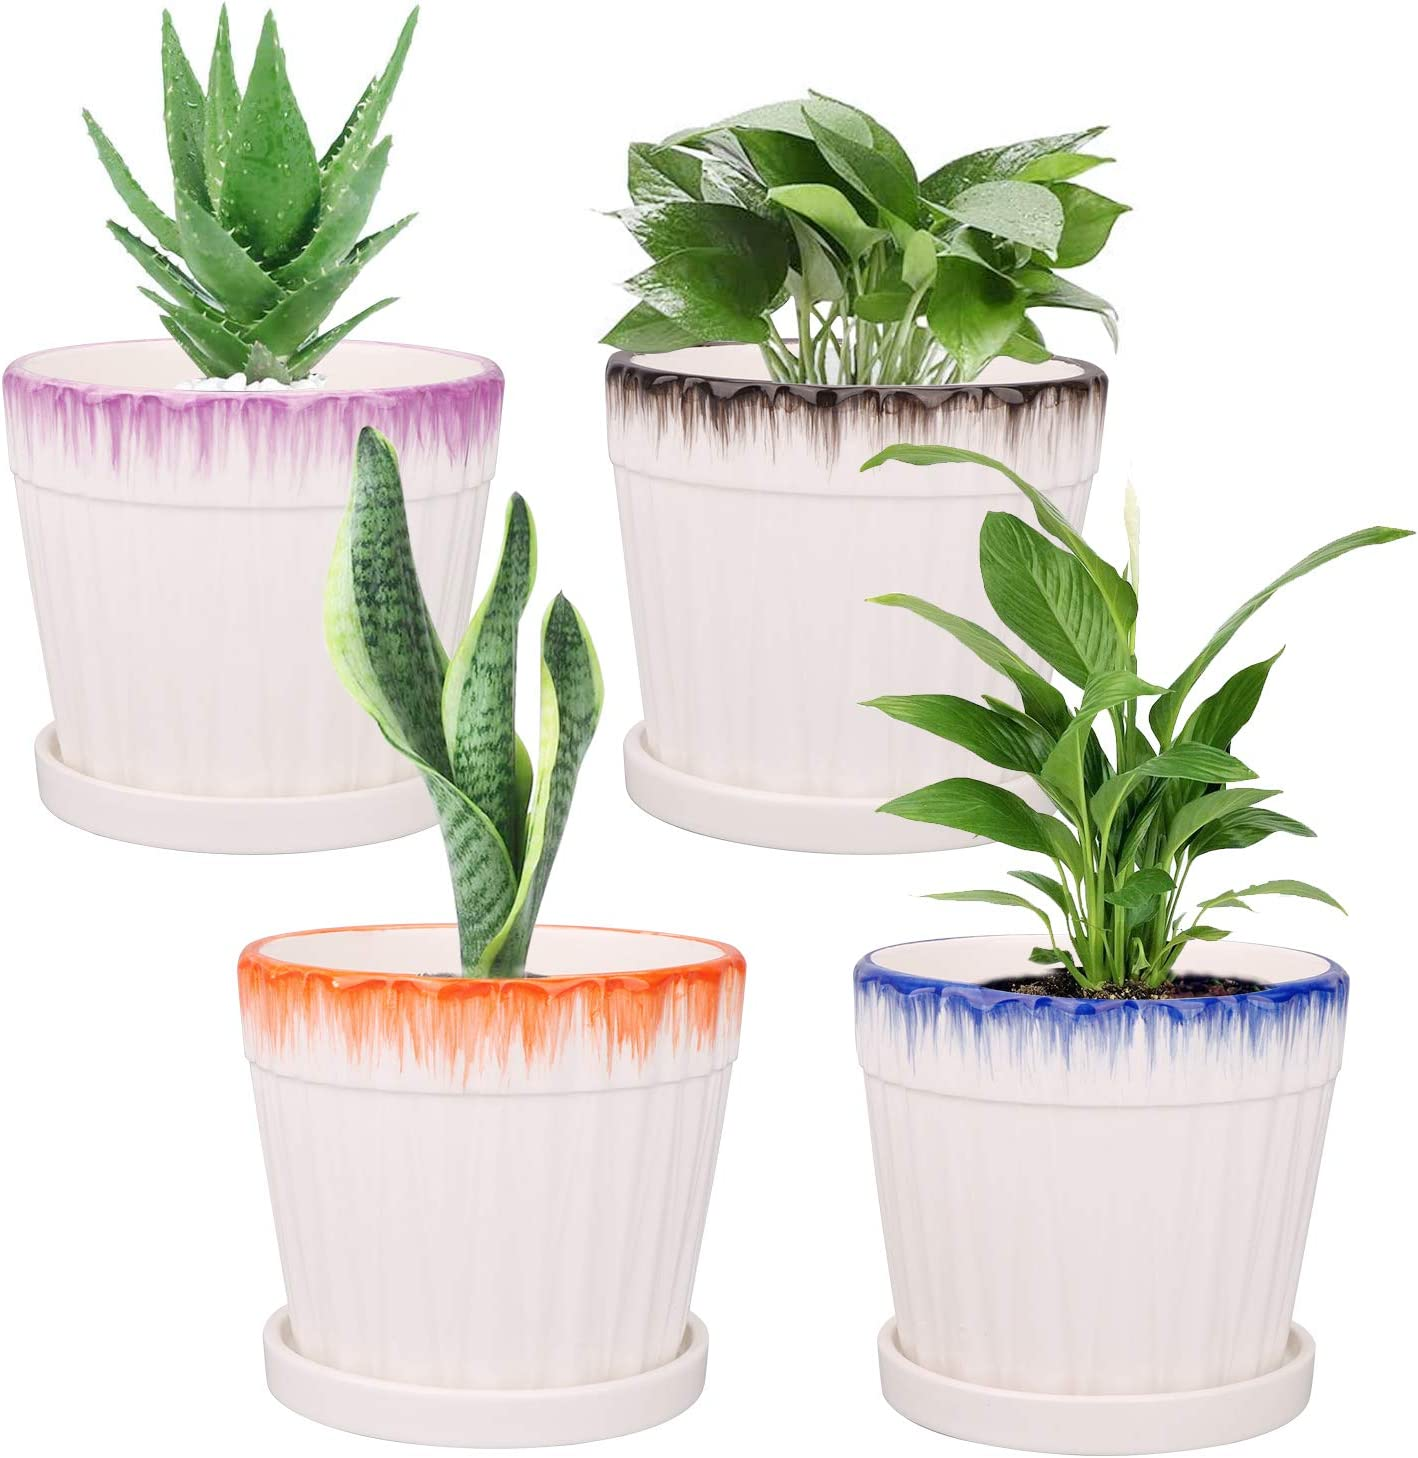 Flower Pots, Ufrount Ceramic Planter Pot with Drainage Holes, Succulent Planter Pots Planting Pot Flower Pots for Mini Plant Perfect for Garden, Kitchen, Windowsill - Set of 4 (5.5 Inches)